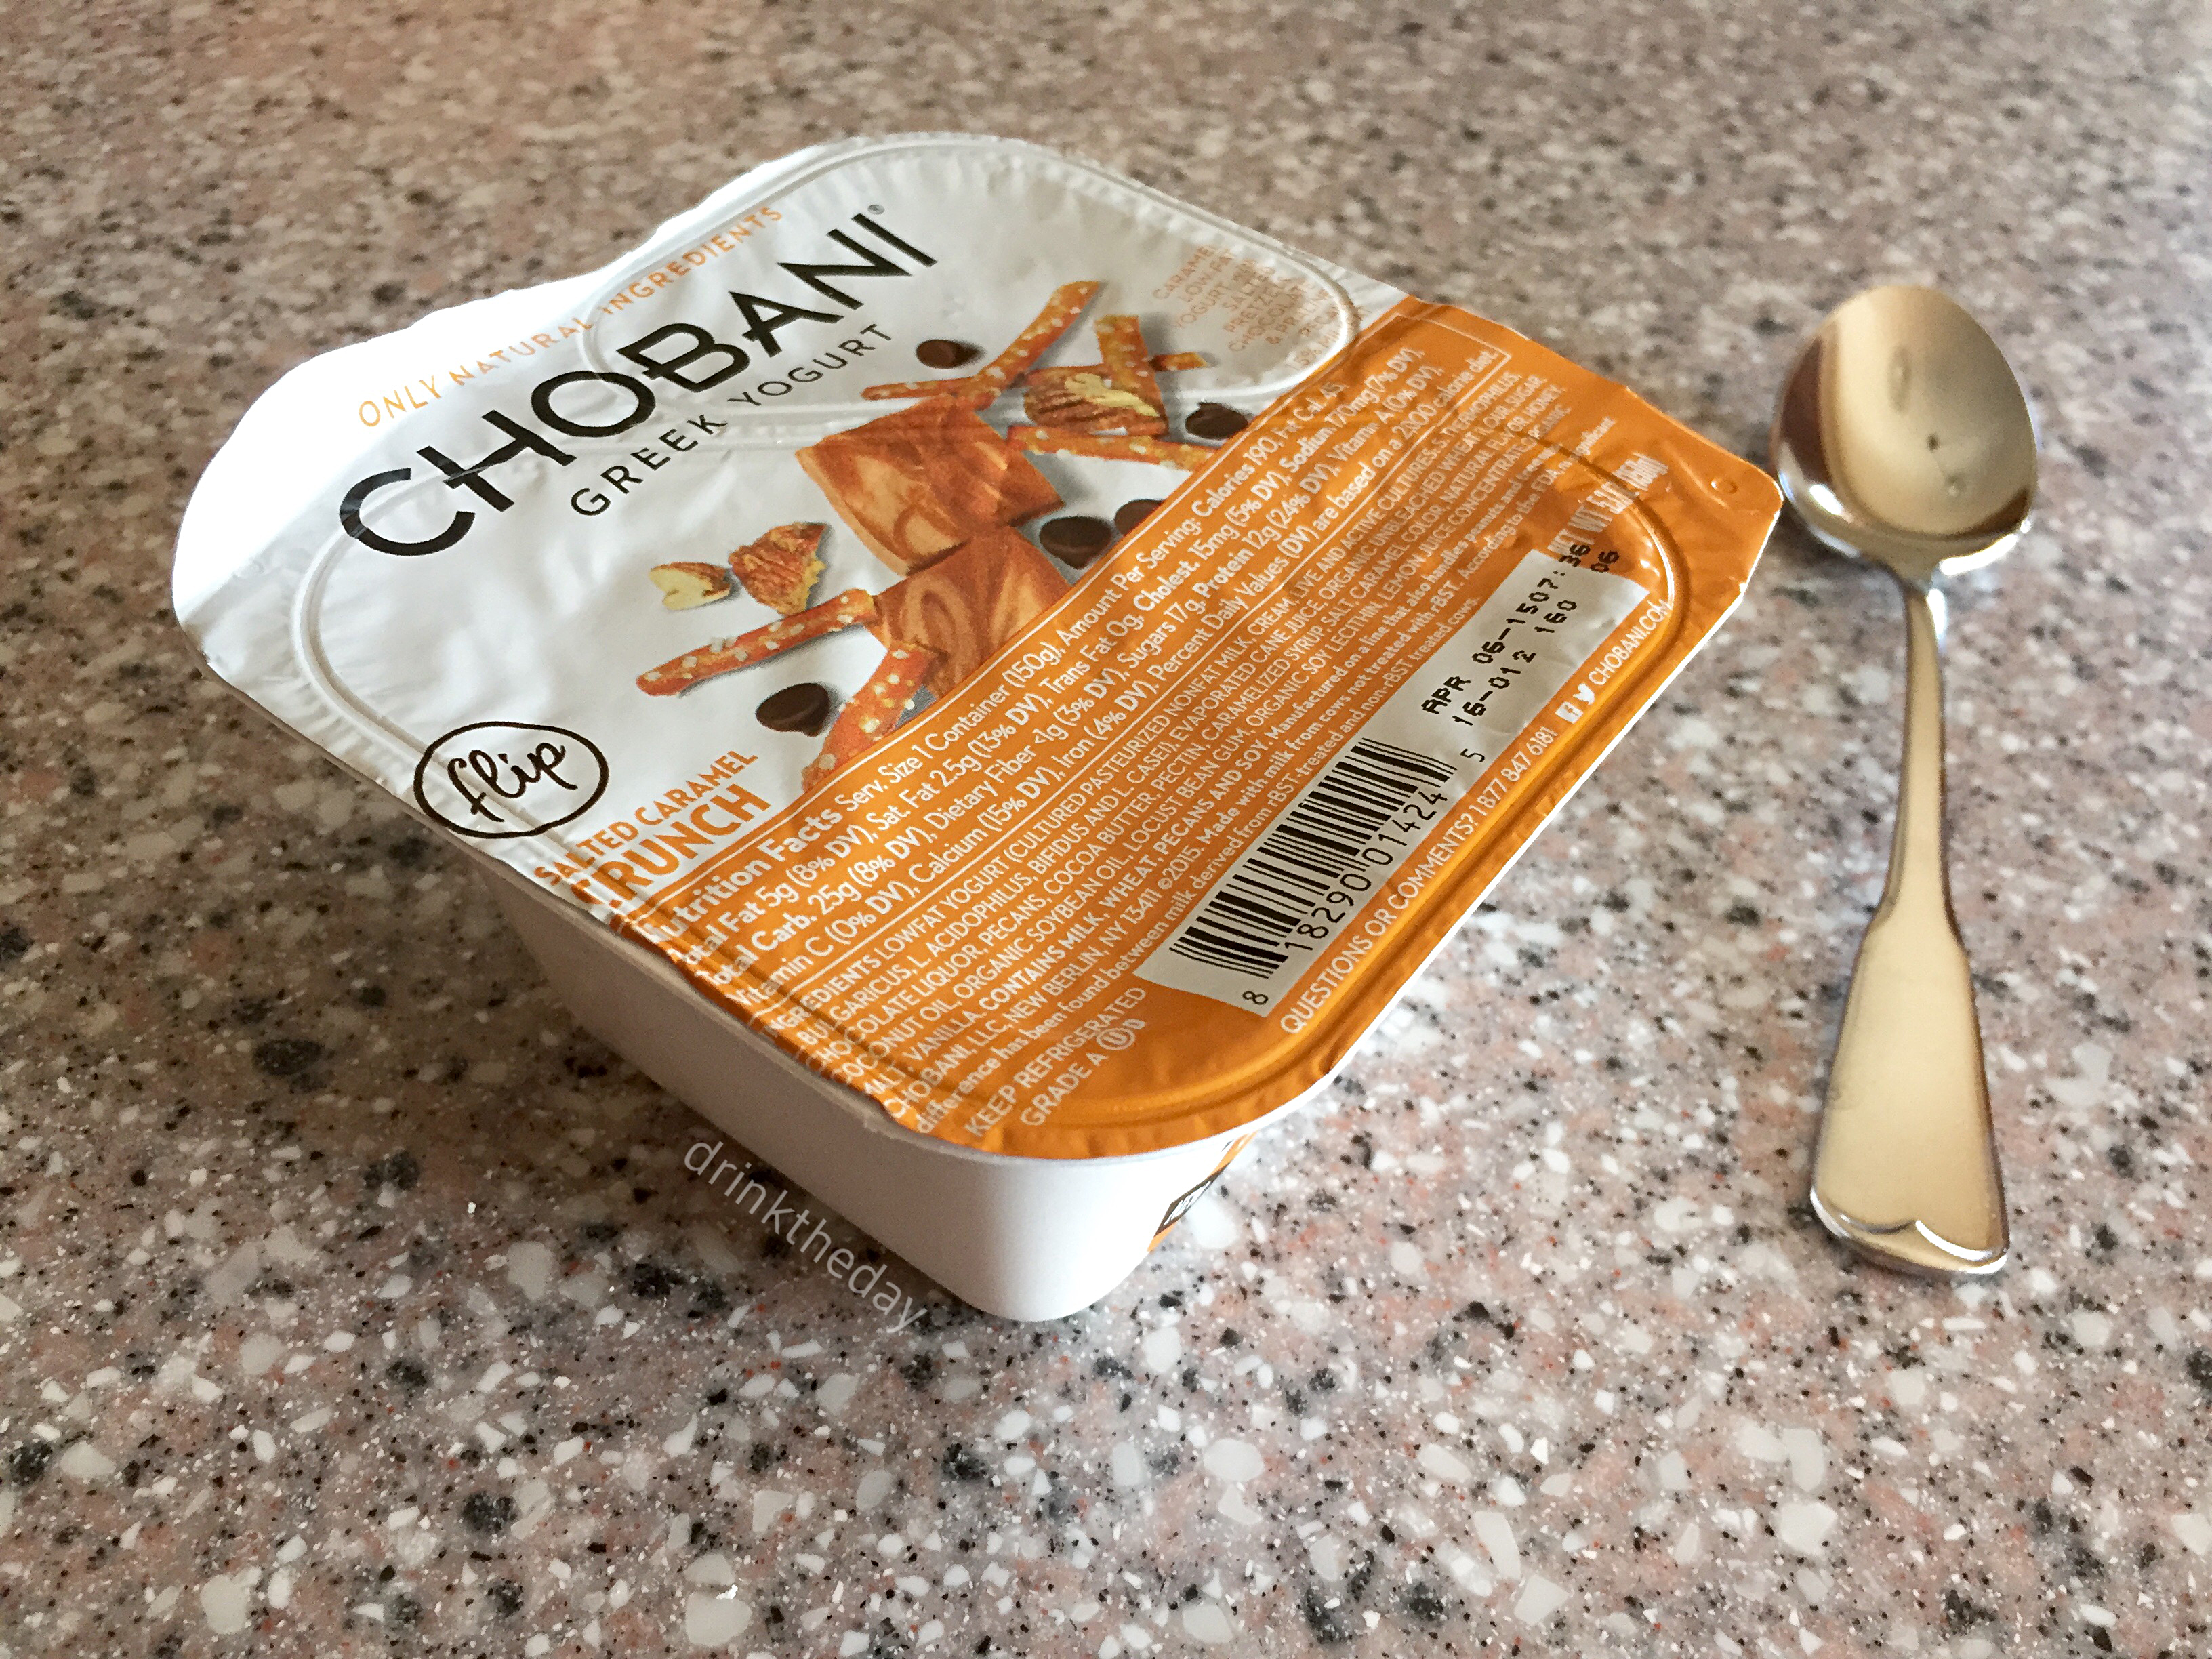 Friday Favorites - Fitness Edition // Chobani Greek Yogurt, Salted Caramel Crunch